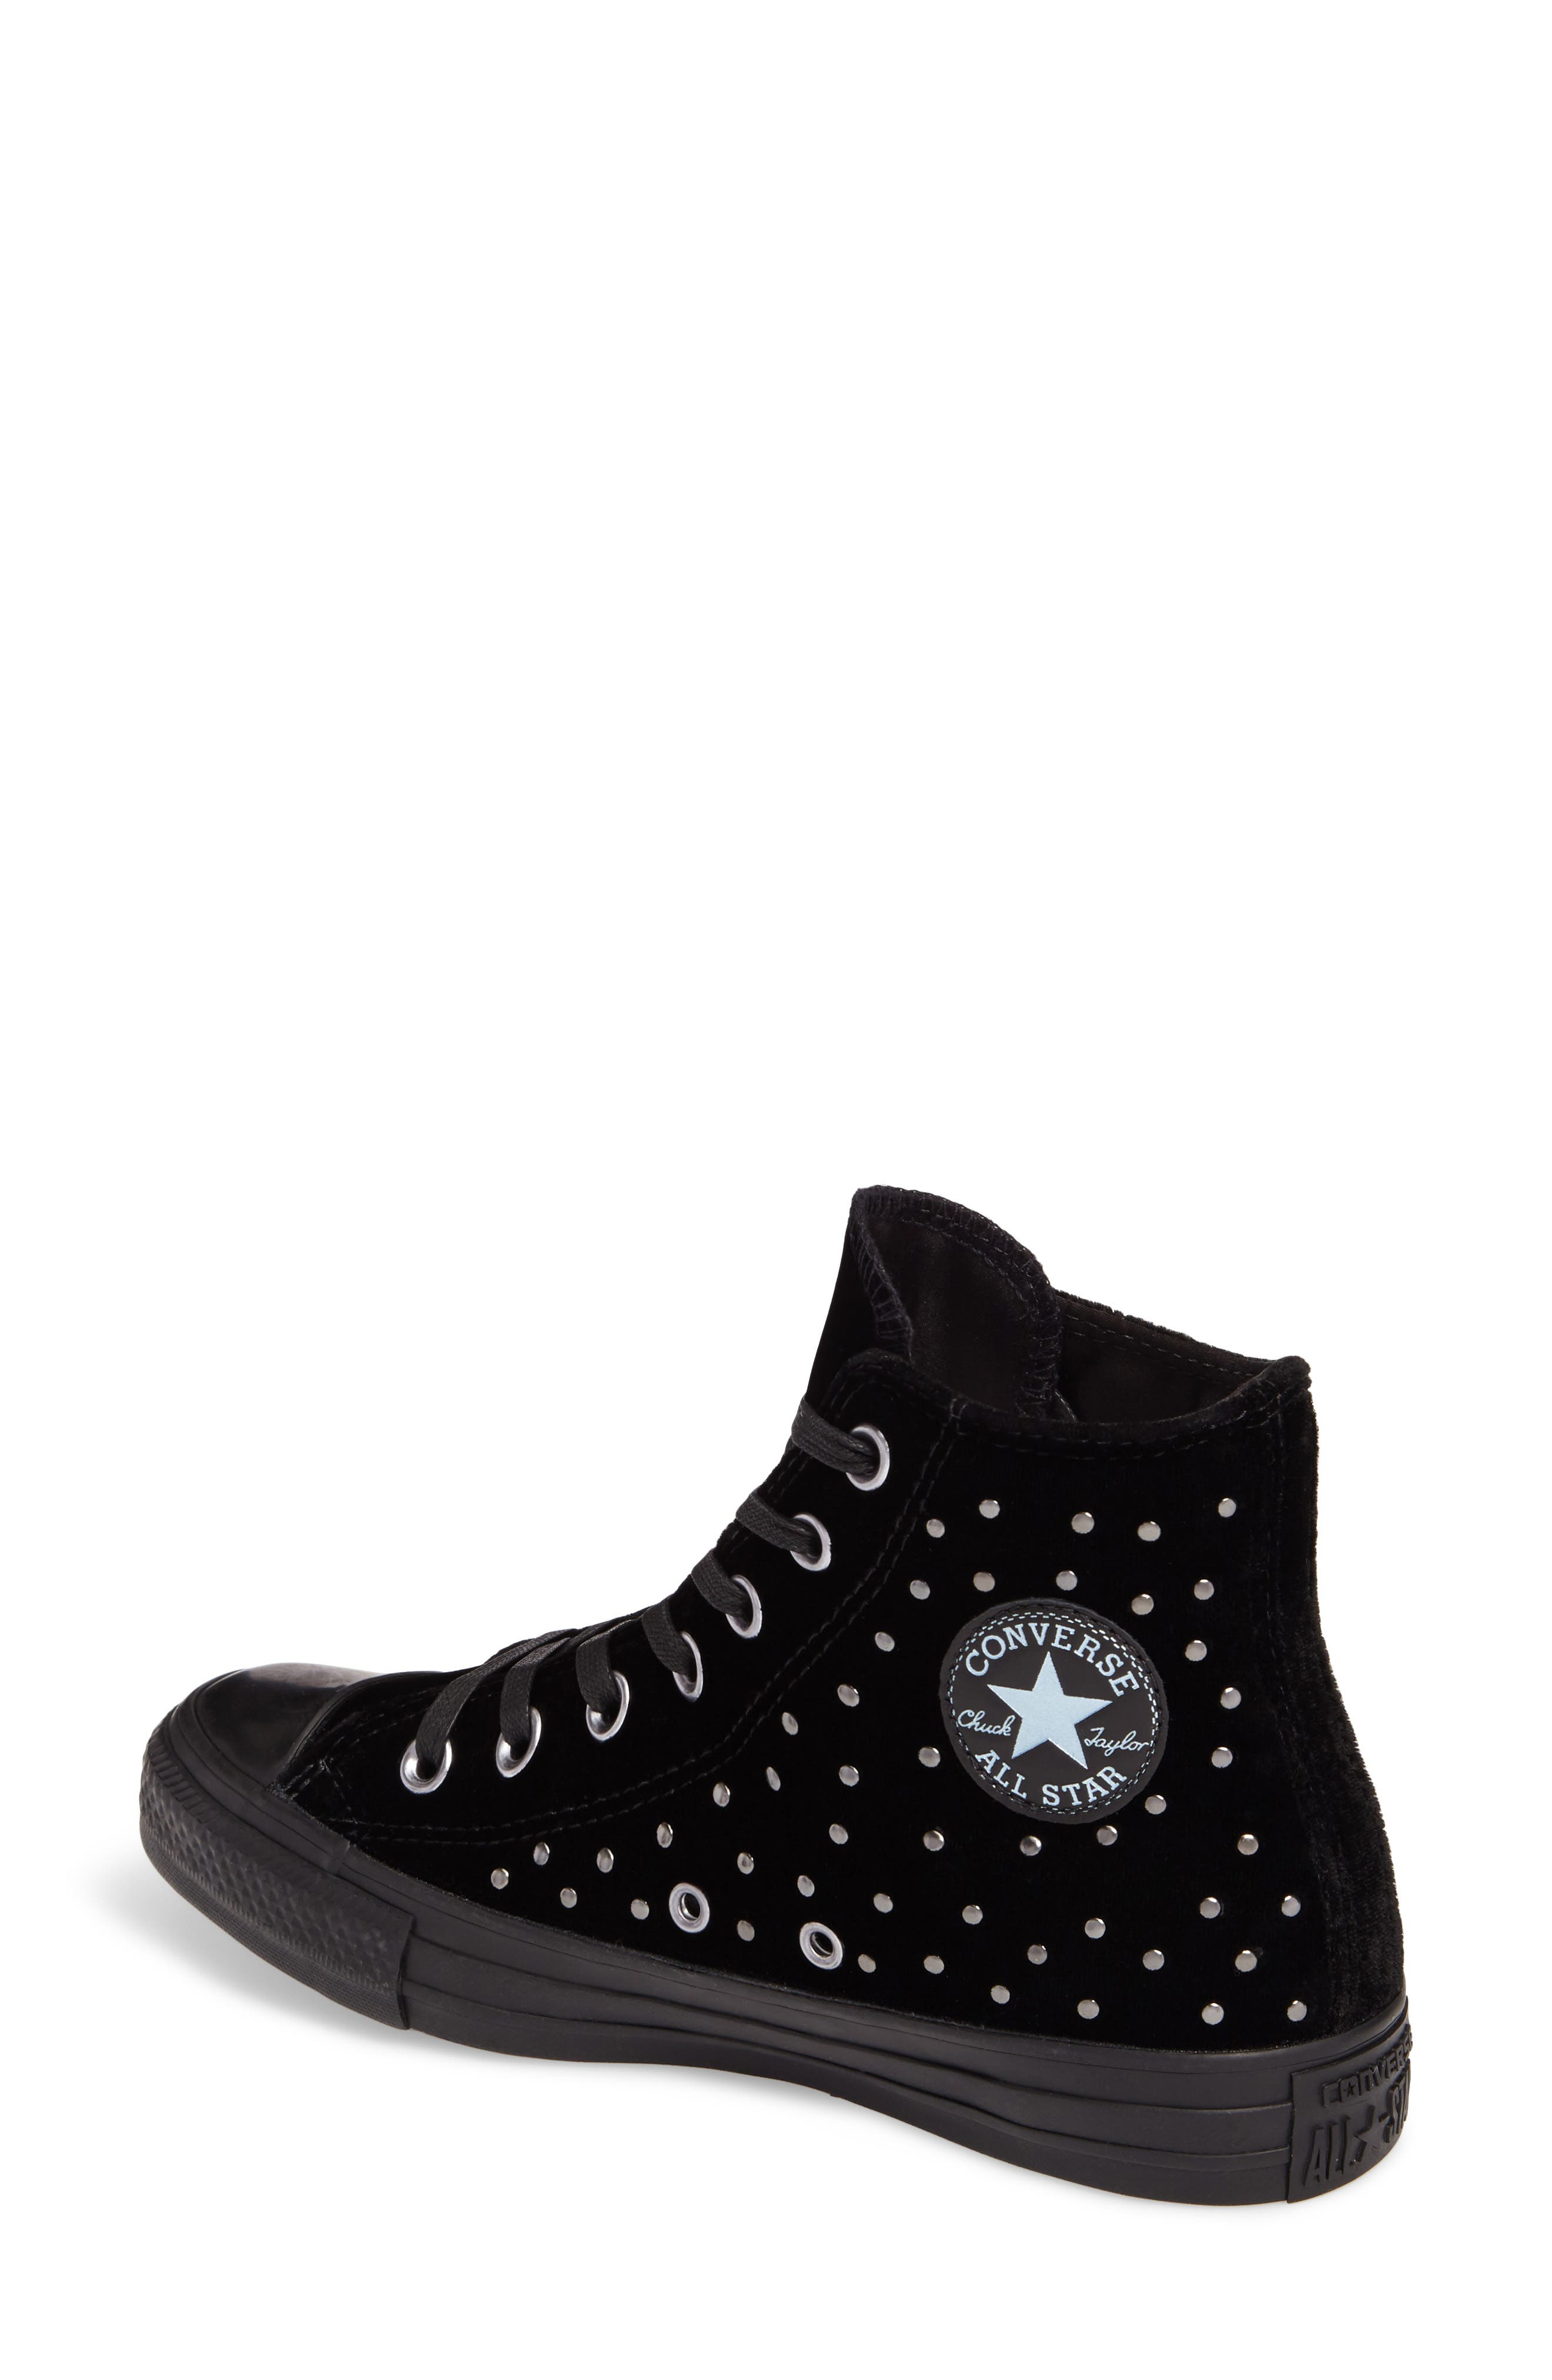 Chuck Taylor<sup>®</sup> All Star<sup>®</sup> Studded High Top Sneakers,                             Alternate thumbnail 2, color,                             001